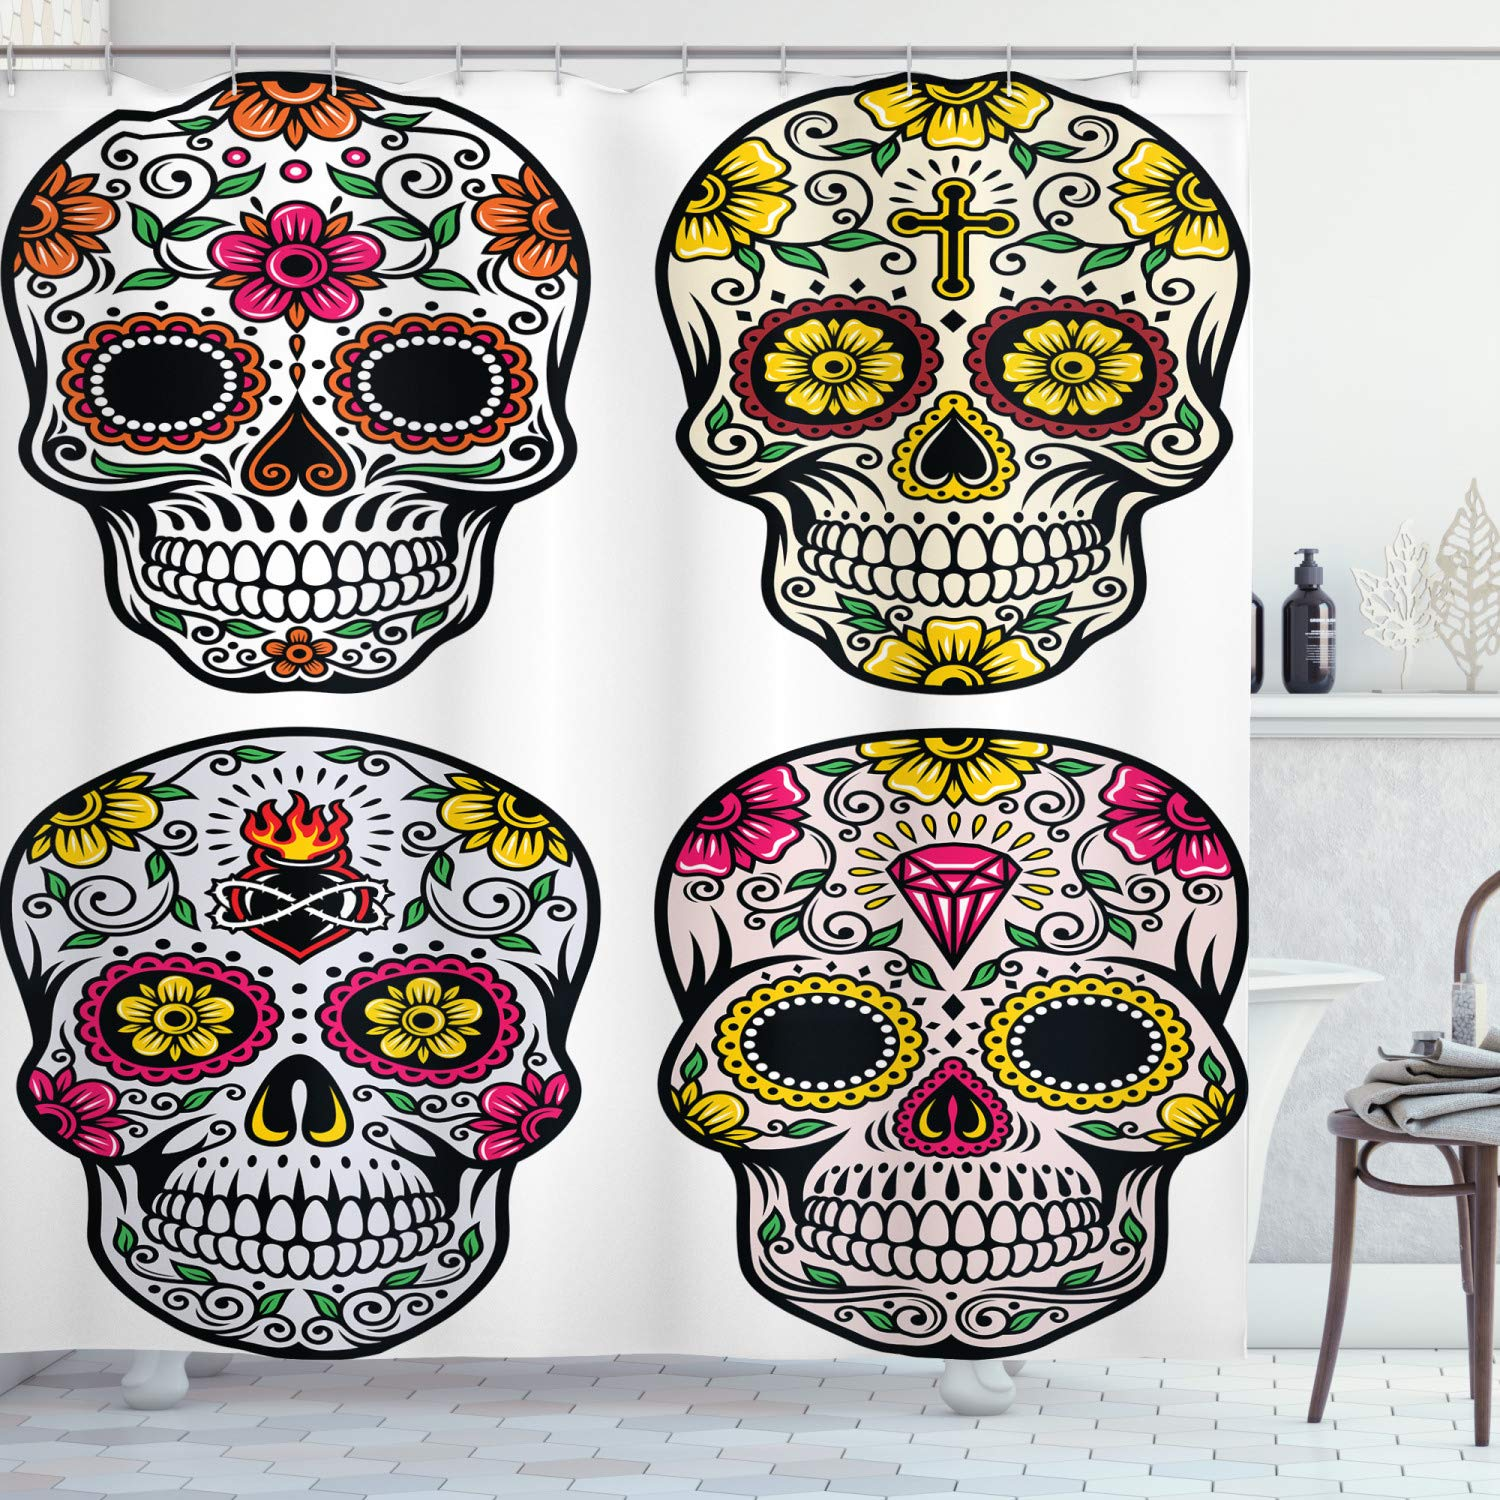 """Ambesonne Day of The Dead Shower Curtain, Dia de Los Muertos Celebration Skull Artwork Image, Cloth Fabric Bathroom Decor Set with Hooks, 75"""" Long, Yellow White"""